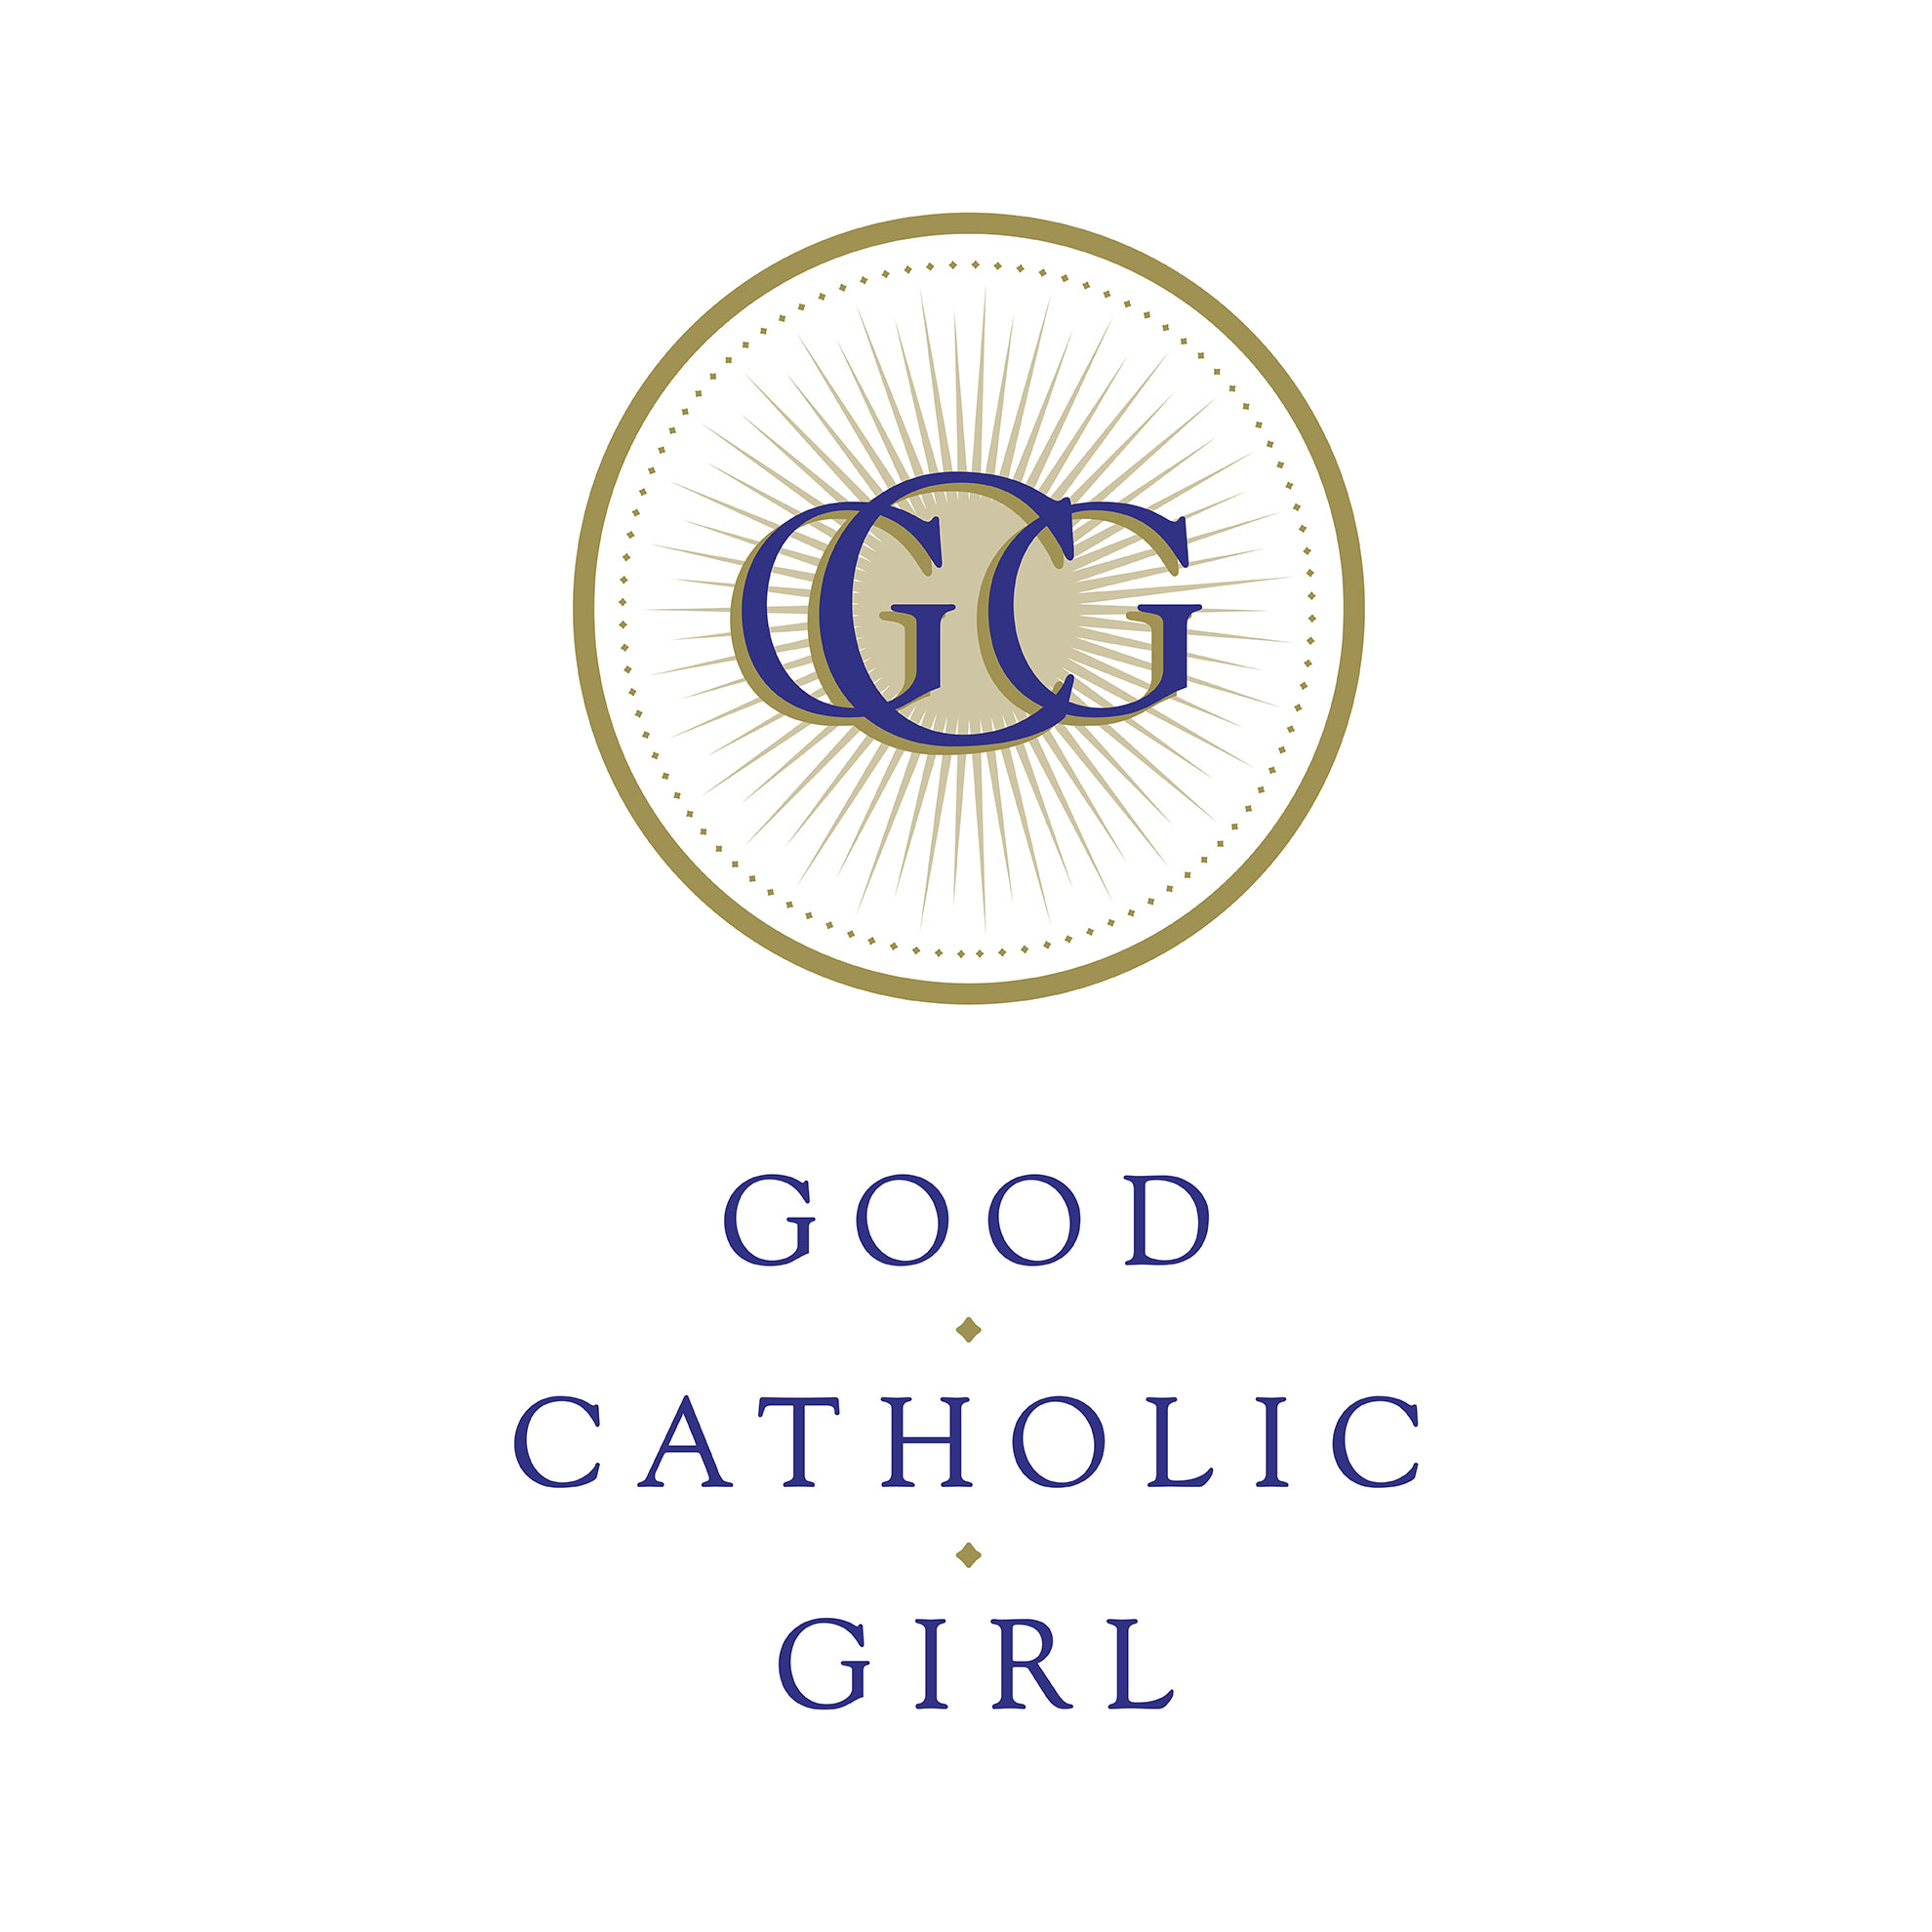 Good Catholic Girl logo